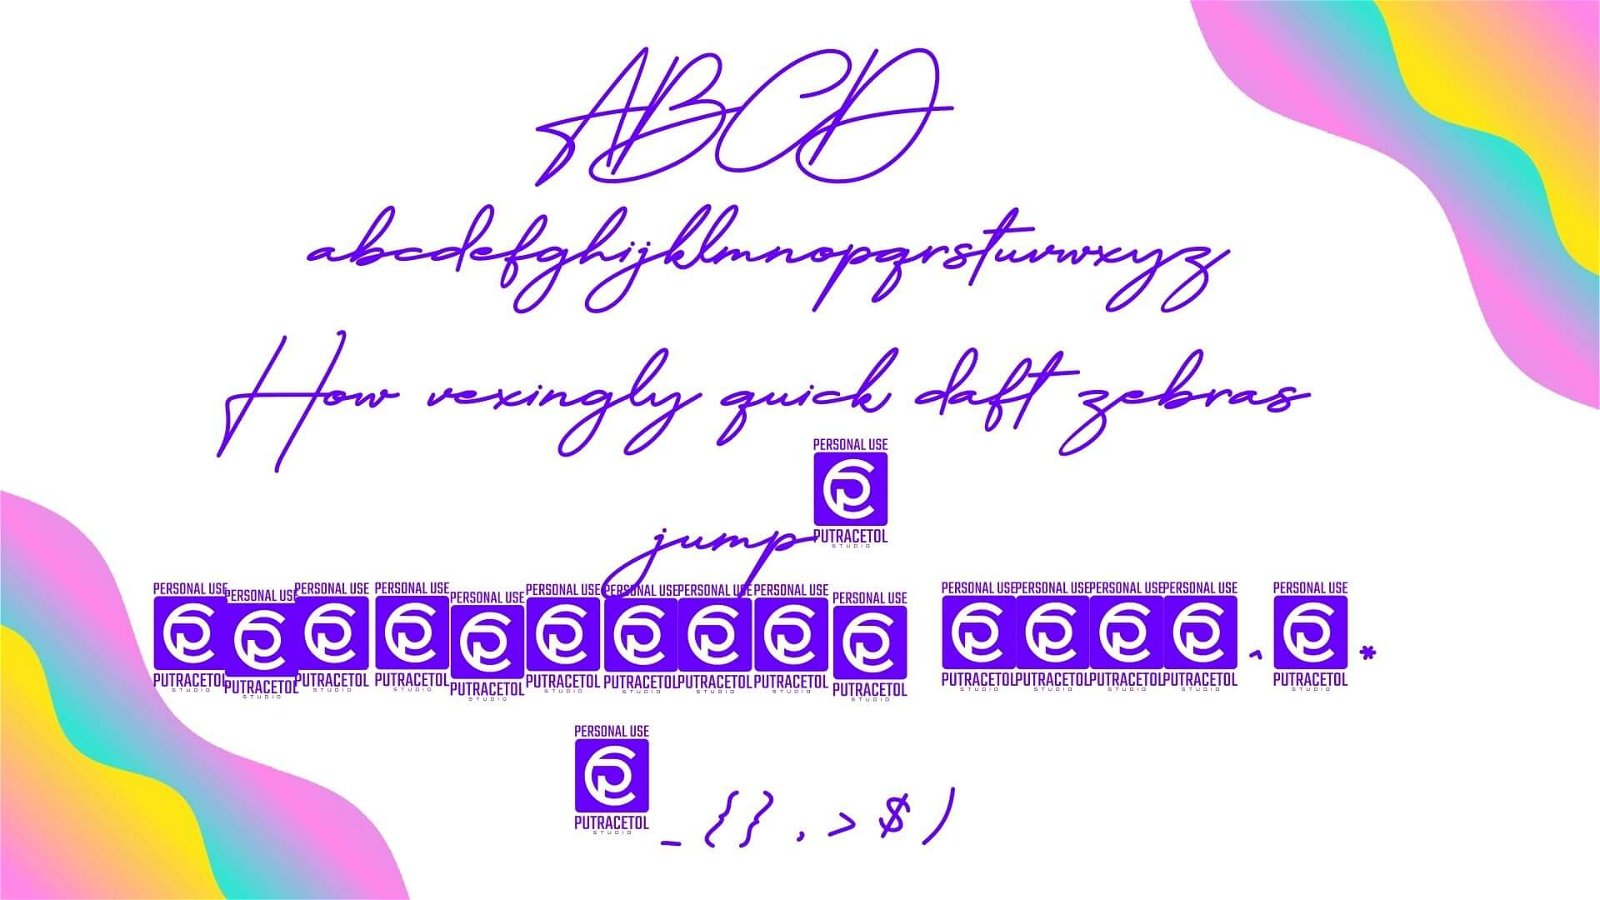 Doctor Signature Font View